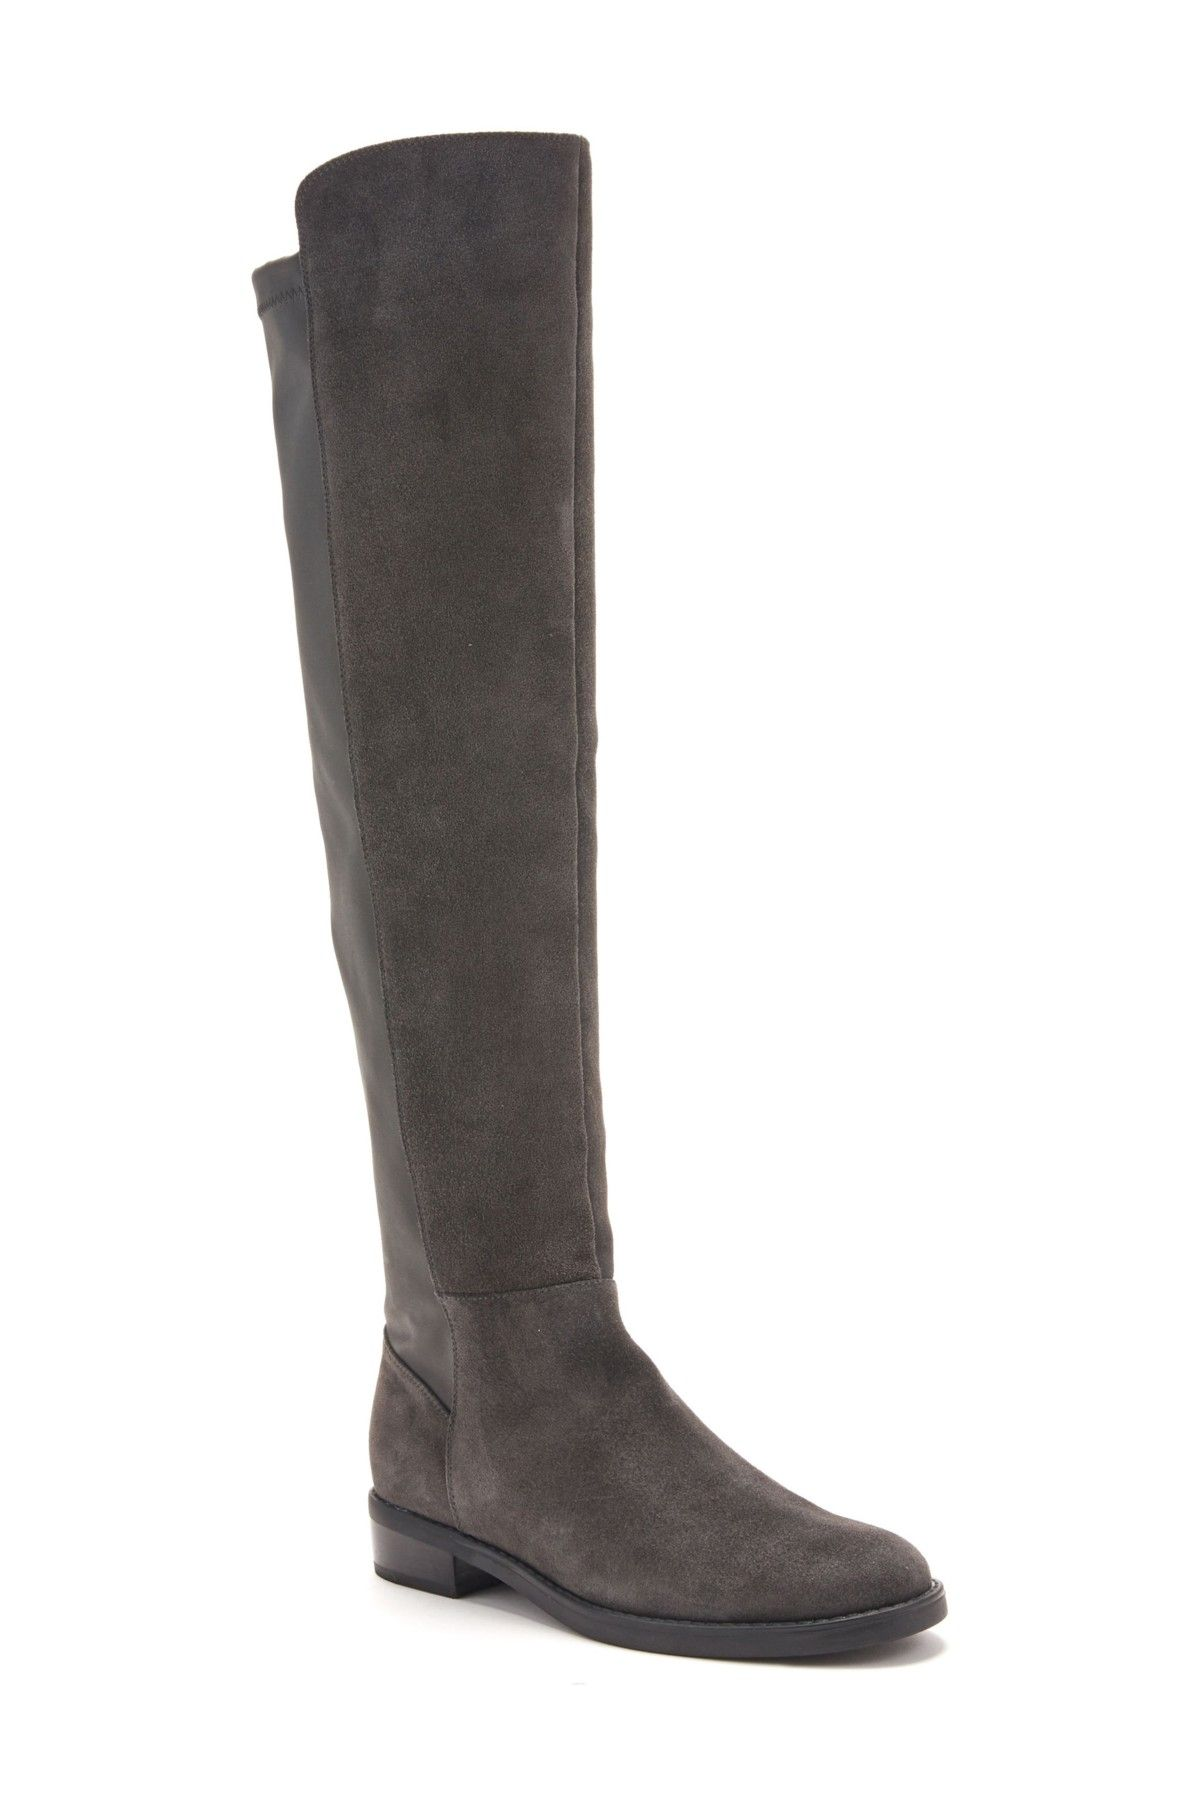 fce4b571f78 Blondo - Olivia Knee-High Leather   Suede Boot is now 50% off. Free  Shipping on orders over  100.